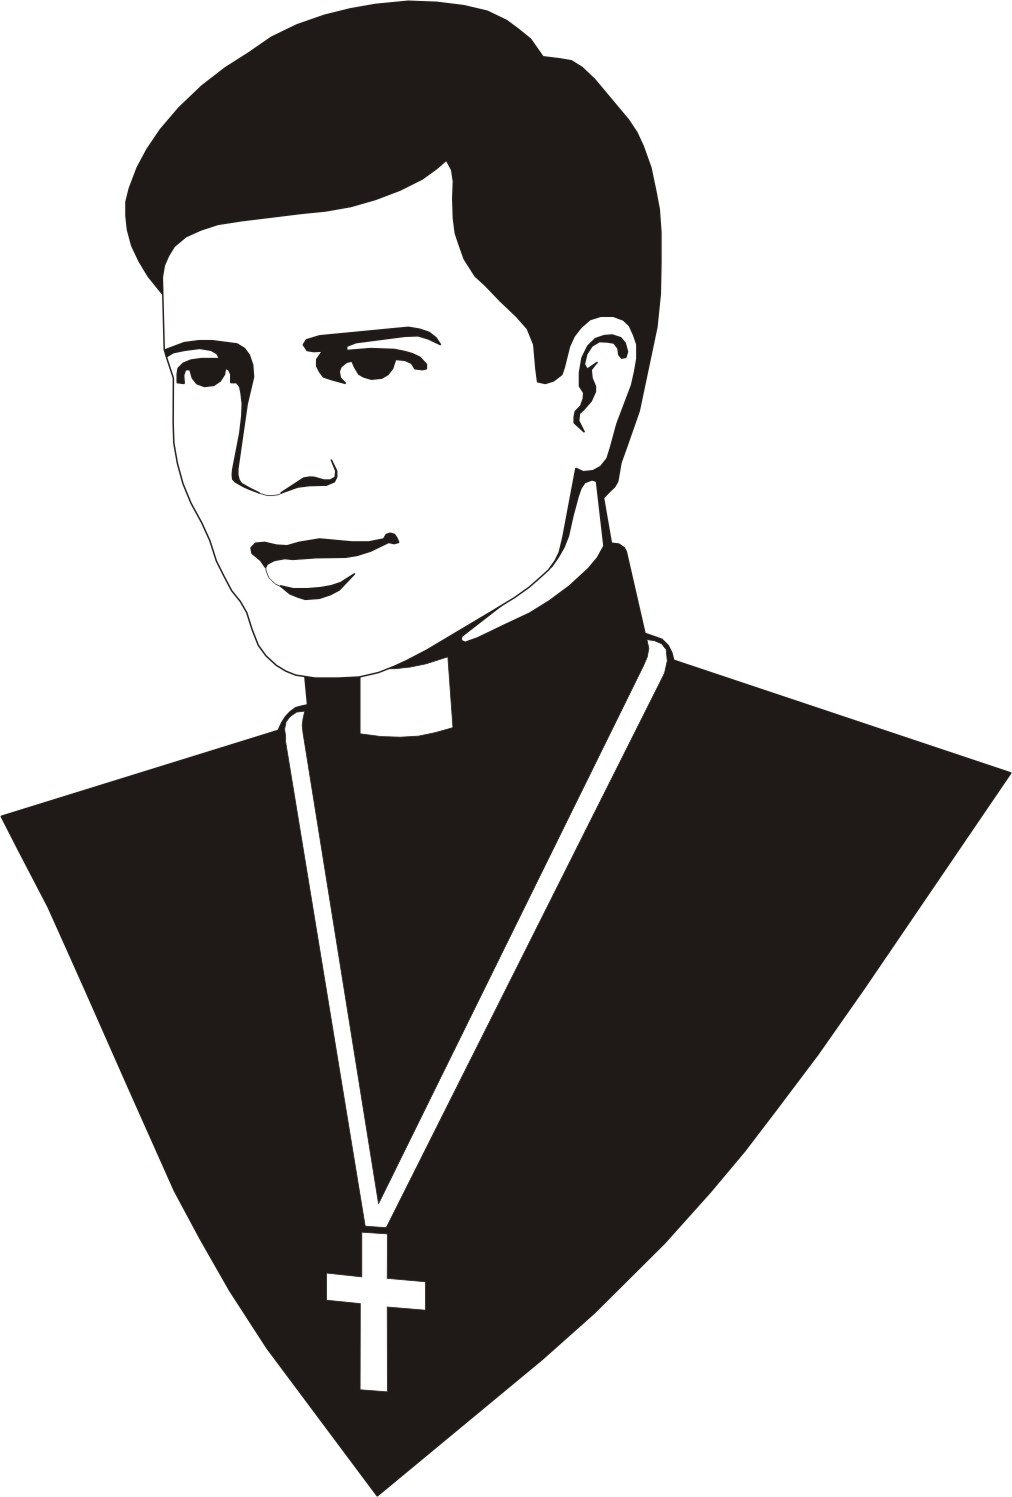 Bad clipart priest. Diary of a rogue